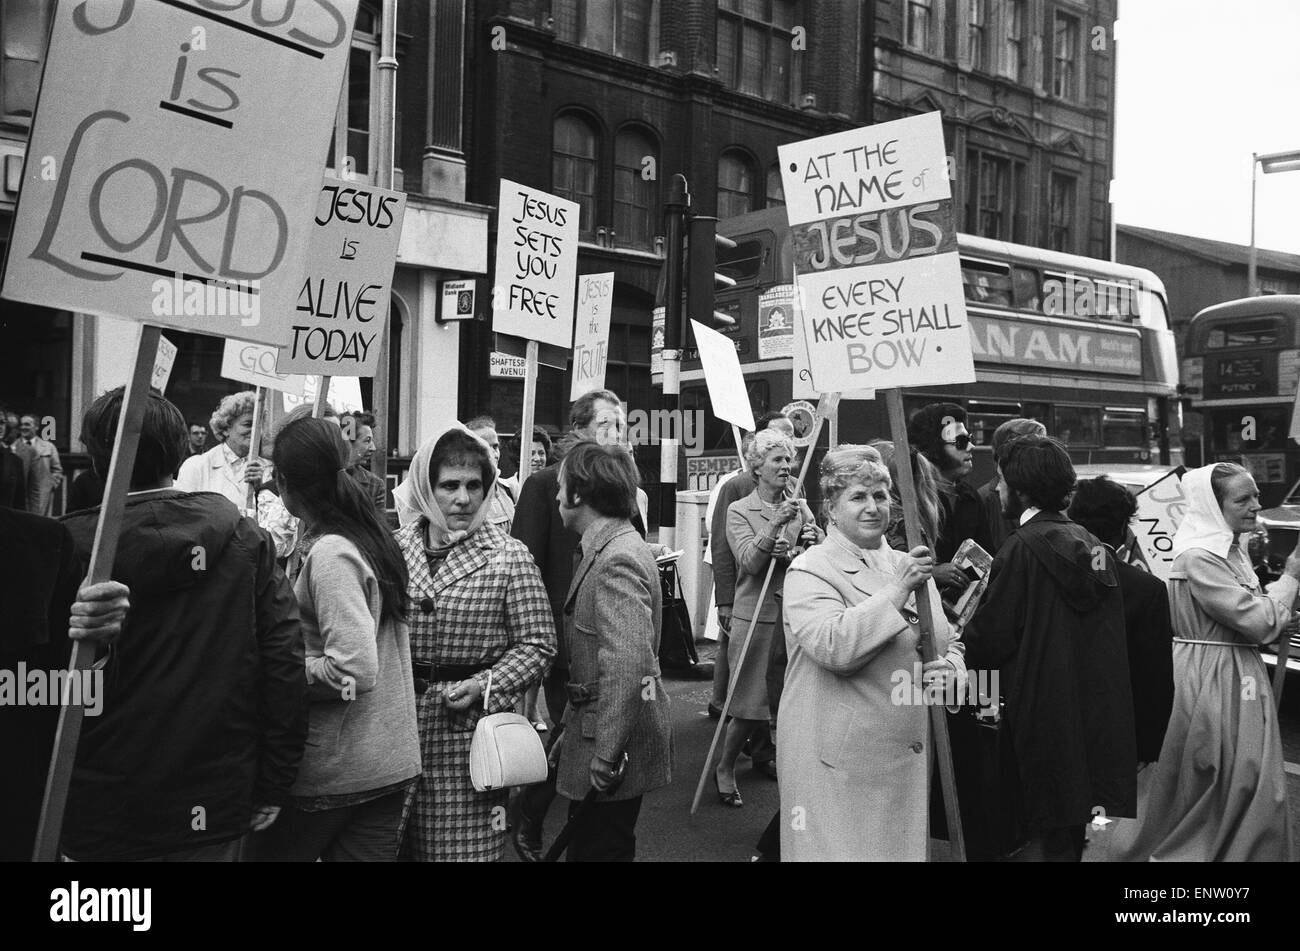 Demonstrators and star mingle outside the Palace Theatre, Cambridge Circus, London on the opening night of Jesus Stock Photo